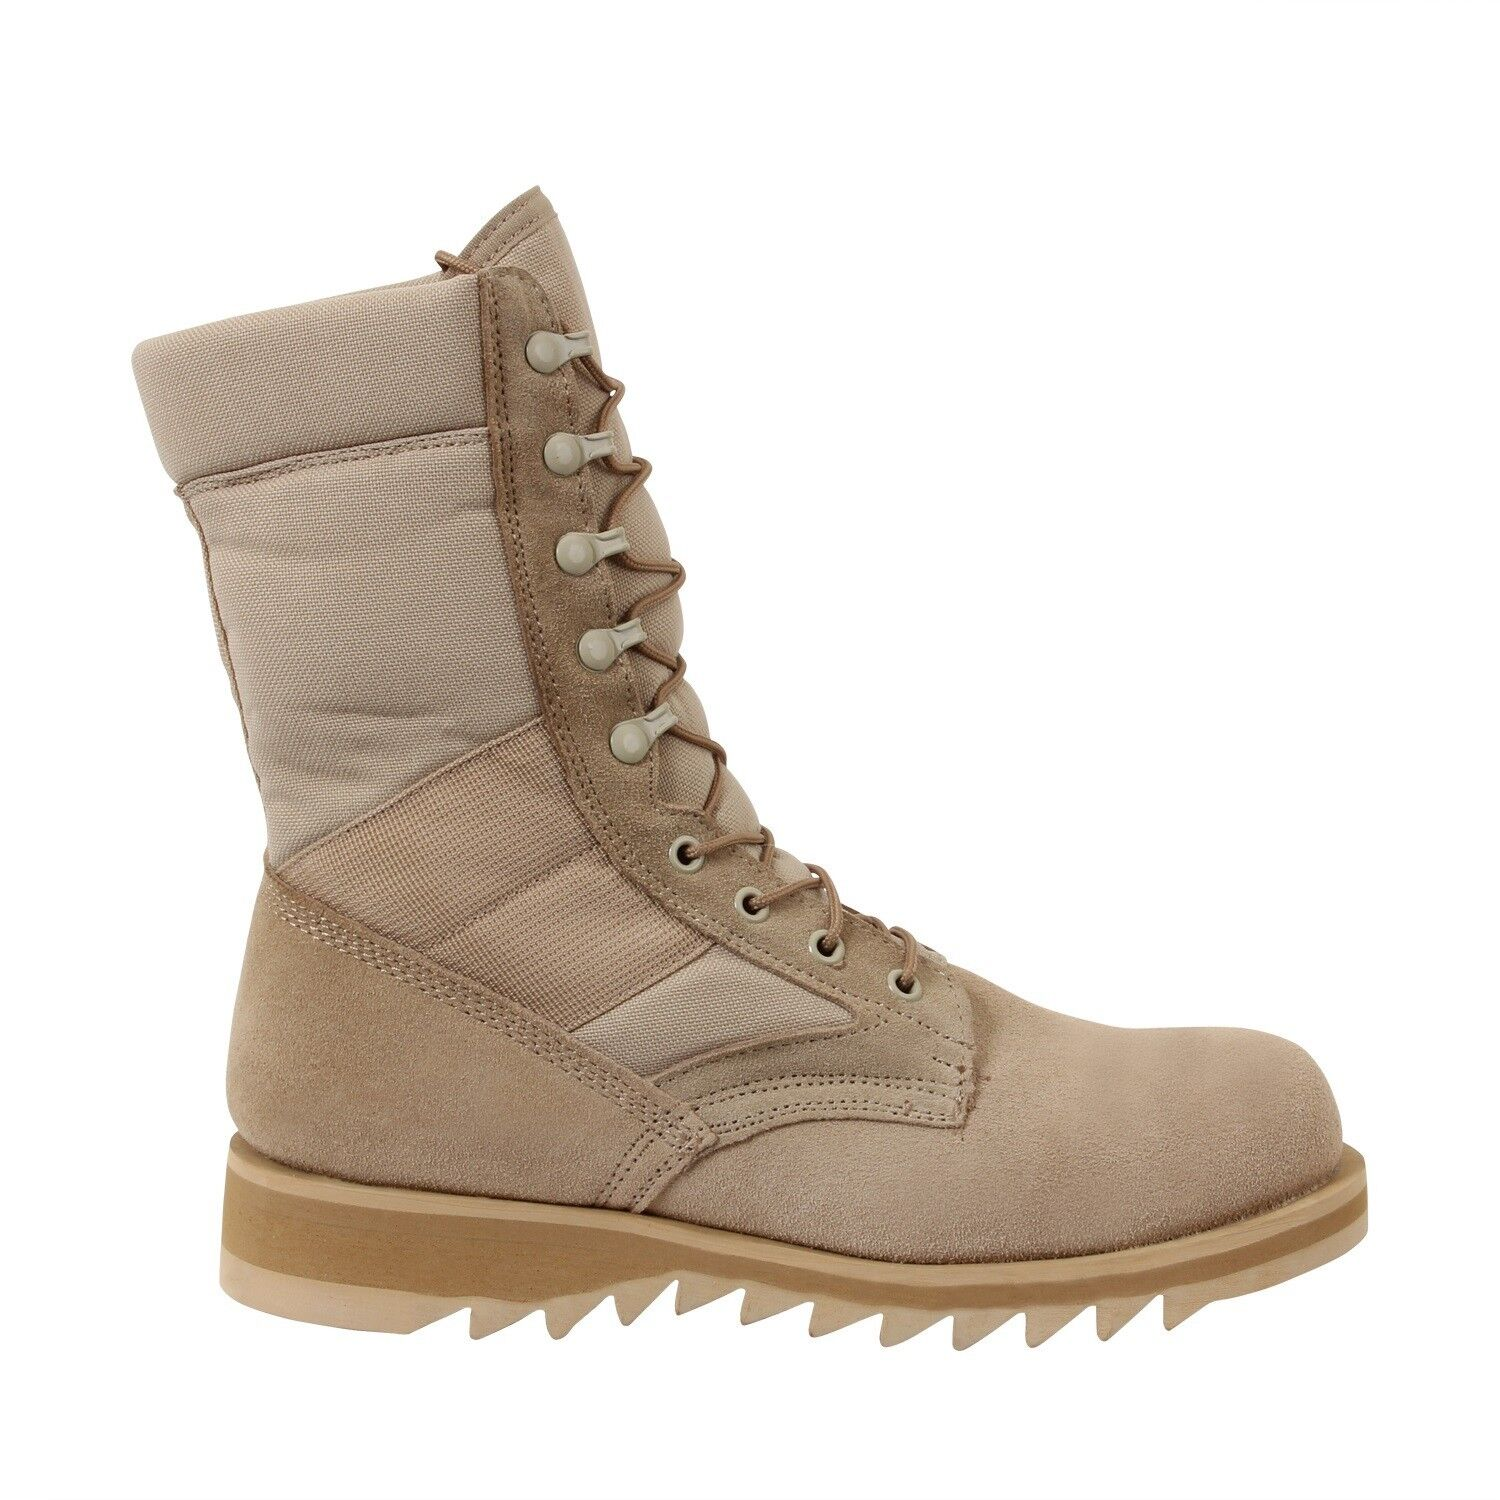 Ripple Sole Tactical Hot Weather MILITARY DESERT BOOTS SIZES 5 to13 Reg or Wide